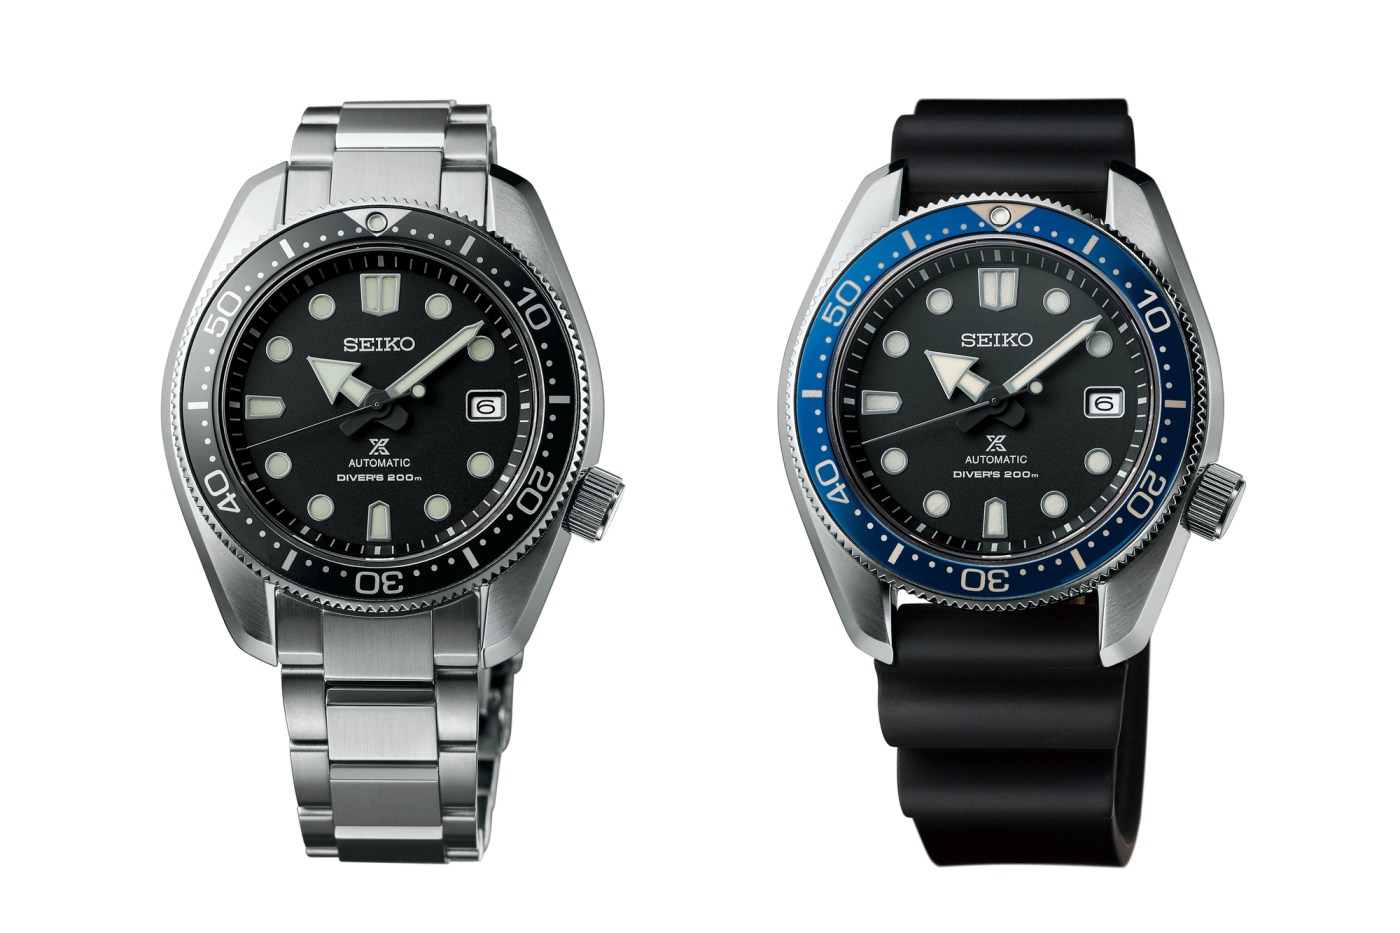 Seiko SPB077 and SPB079 dive watches